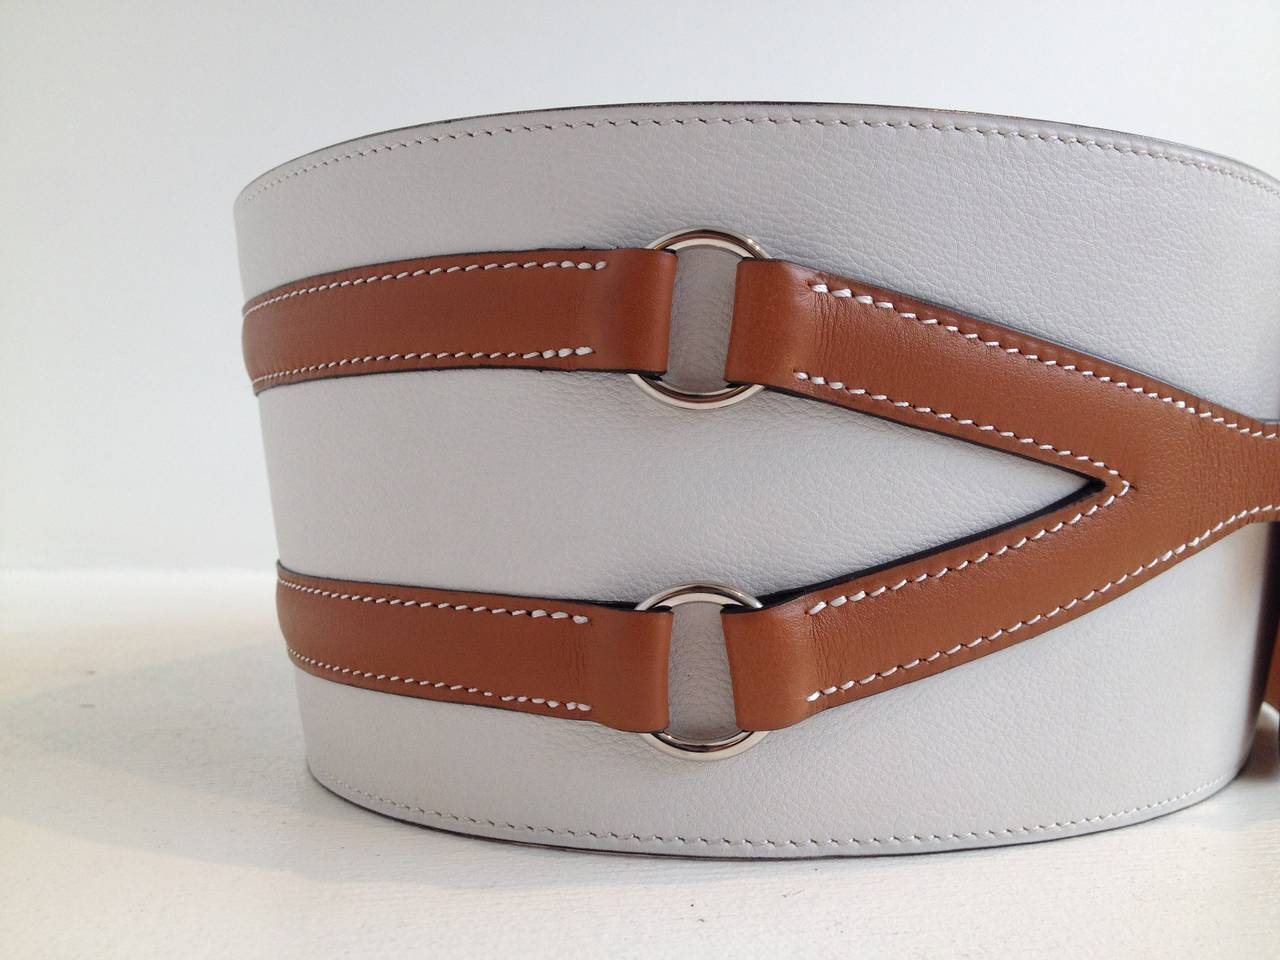 Make any outfit special with this amazing belt - made with the most beautiful leather and hardware and the impeccable craftsmanship that Hermes is known for, this piece is extremely luxurious. The wide cream leather is striped with two thinner